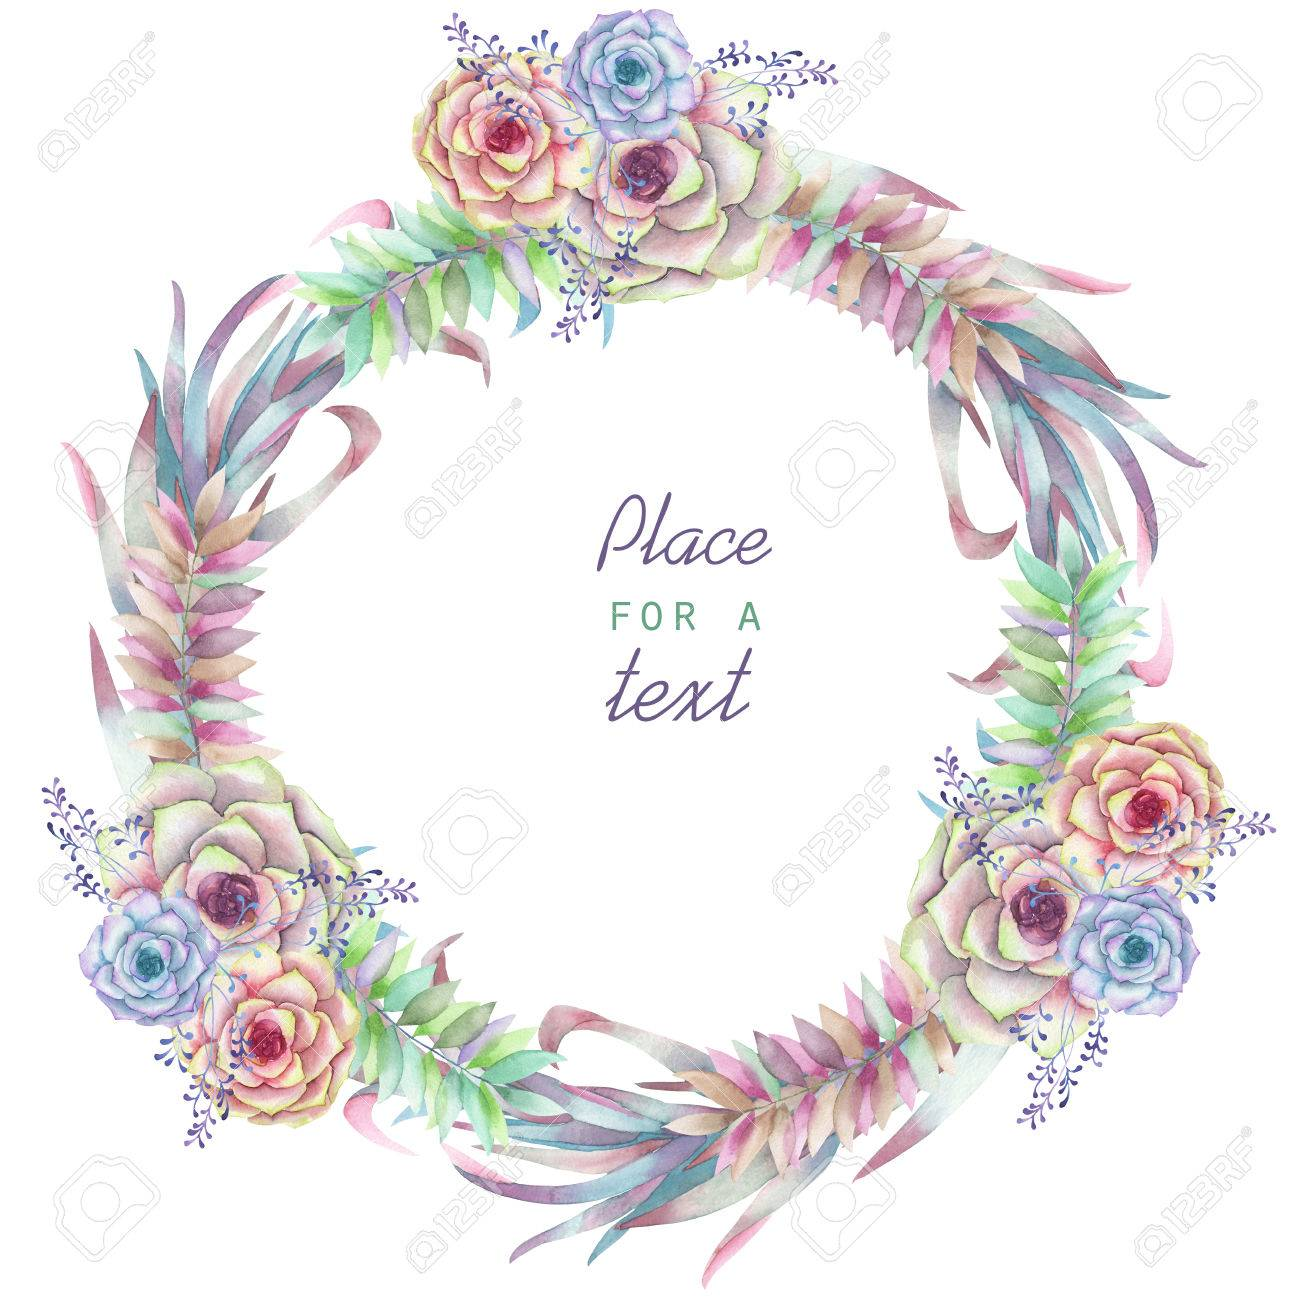 A Circle Frame Wreath Border For Text With The Watercolor Flowers And